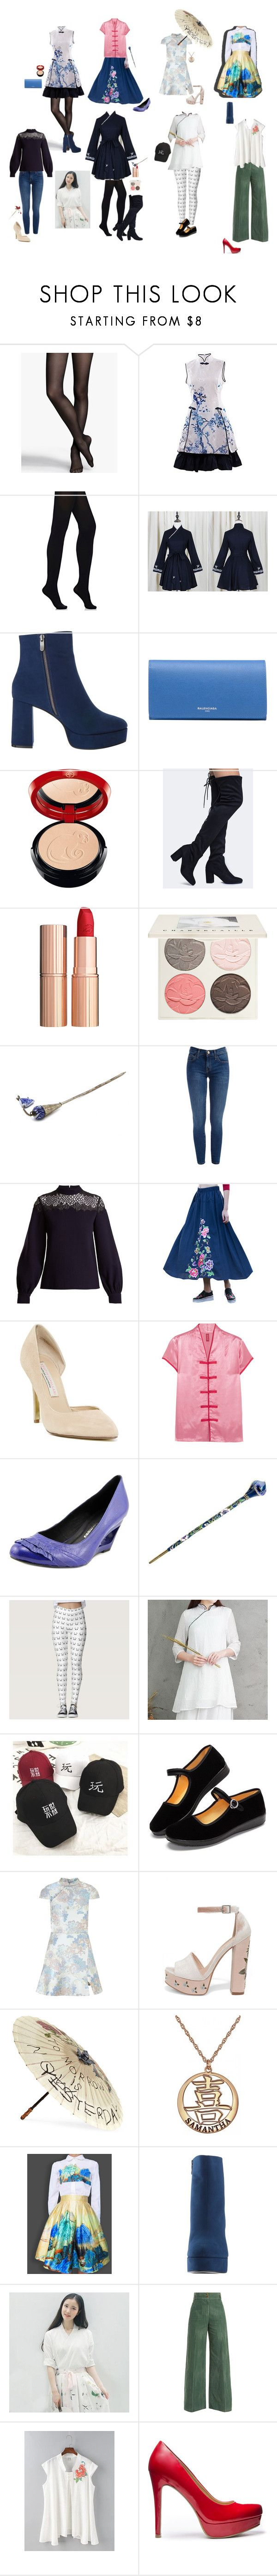 """""""my chinese style"""" by dance4ever1222 ❤ liked on Polyvore featuring Express, Wolford, GOGO Girl, Chinese Laundry, Balenciaga, Giorgio Armani, Charlotte Tilbury, Chantecaille, HUISHAN ZHANG and Staud"""